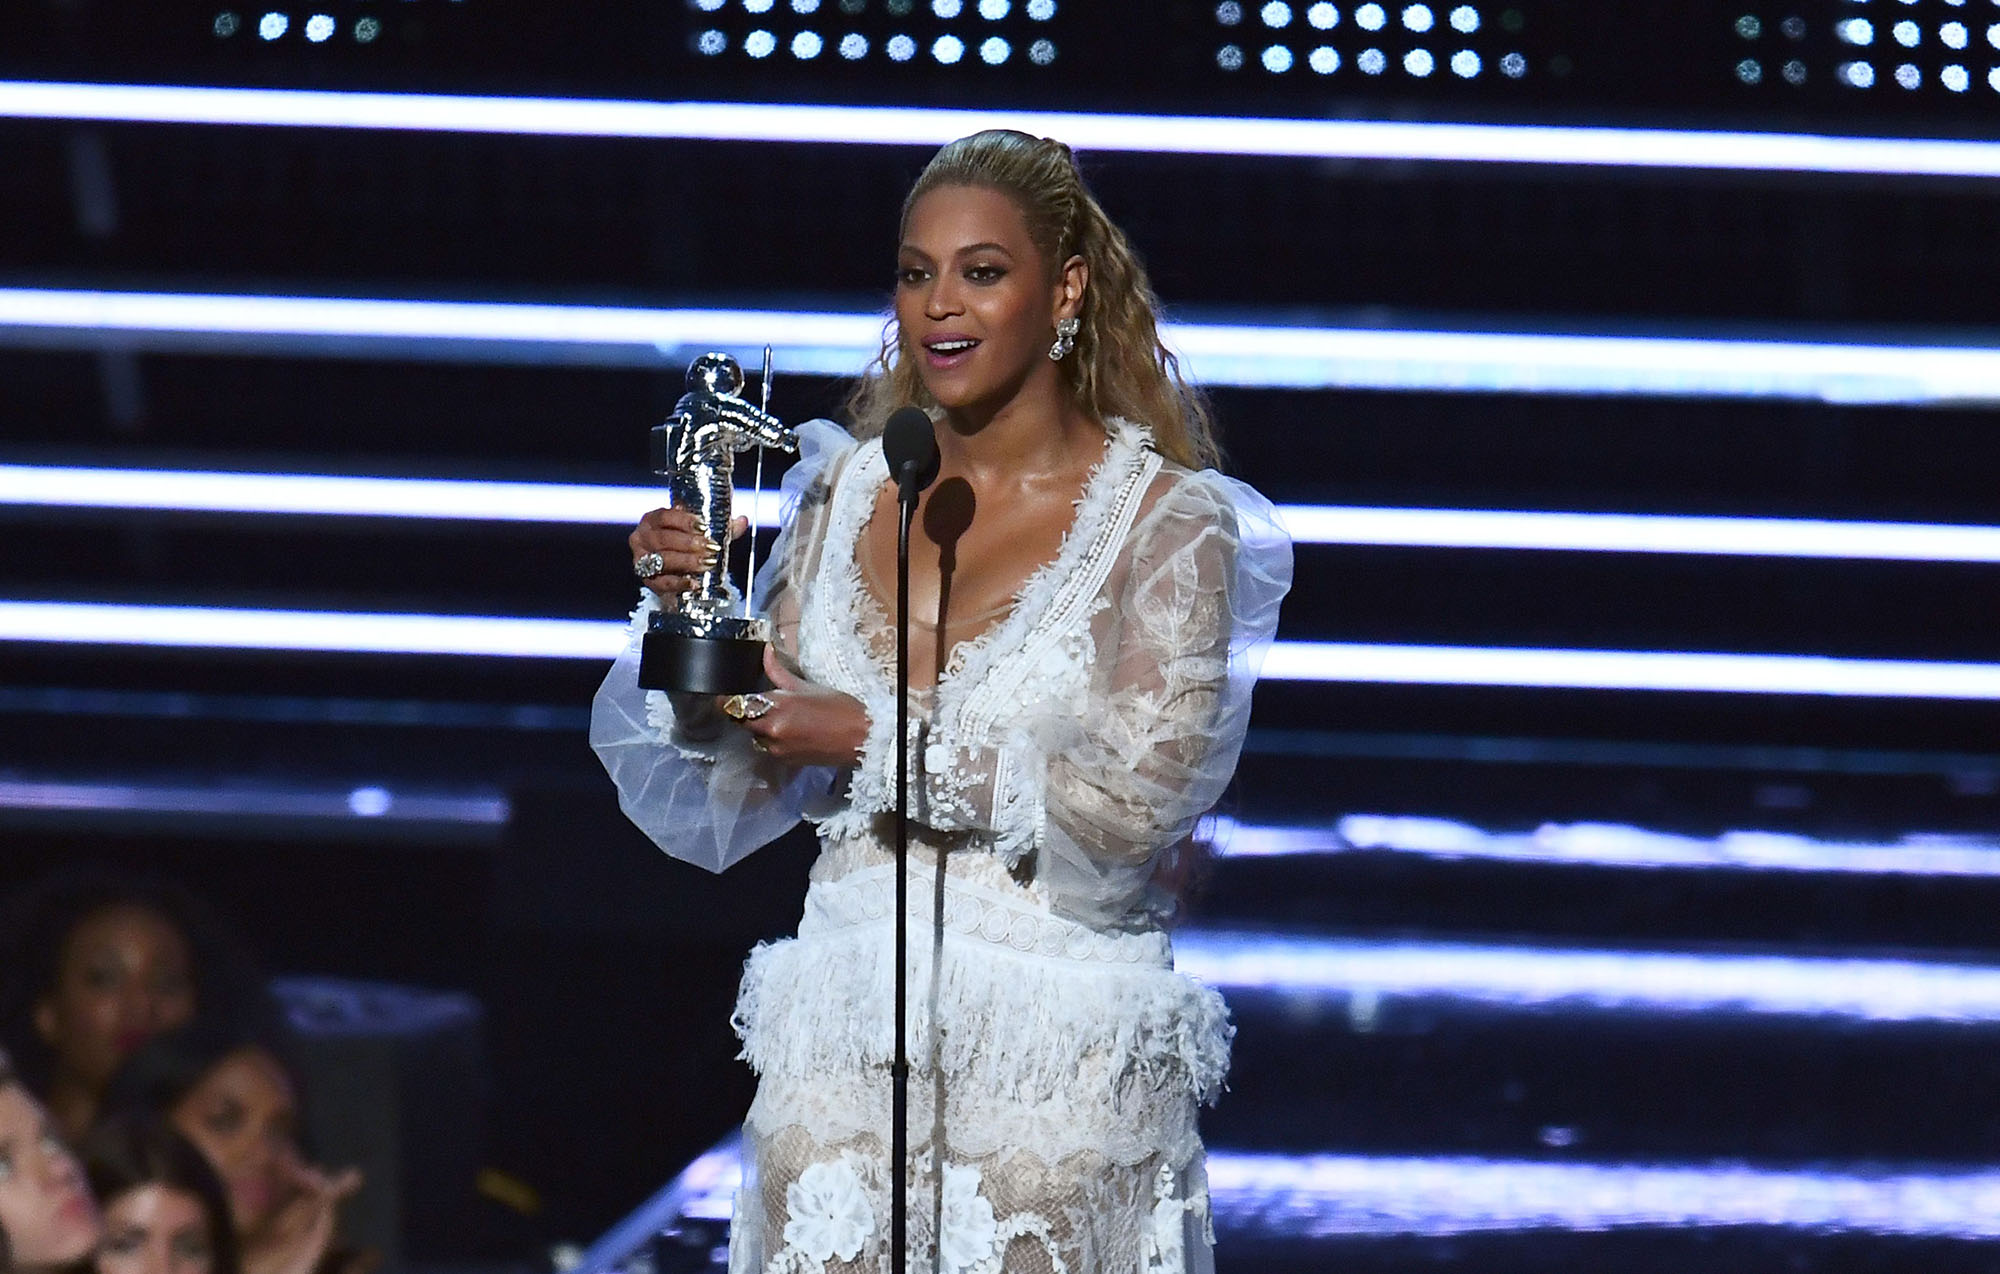 Beyonce accepts an award on stage during the 2016 MTV Video Music Award at the Madison Square Garden in New York on August 28, 2016. / AFP / Jewel SAMAD        (Photo credit should read JEWEL SAMAD/AFP/Getty Images)